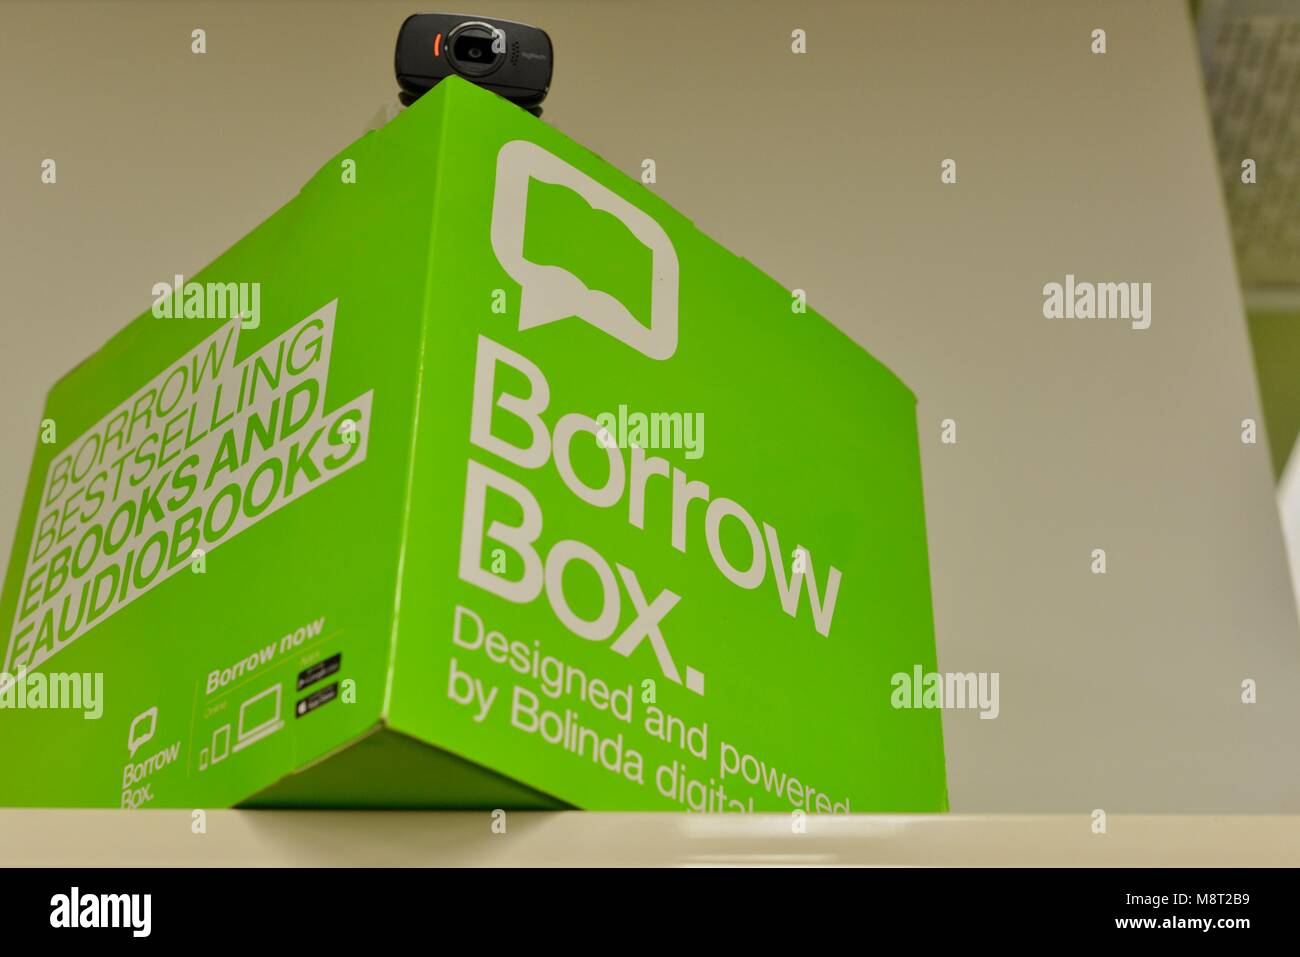 Borrow box and borrowing booth at a library, CityLibraries Aitkenvale, Townsville Queensland, Australia - Stock Image